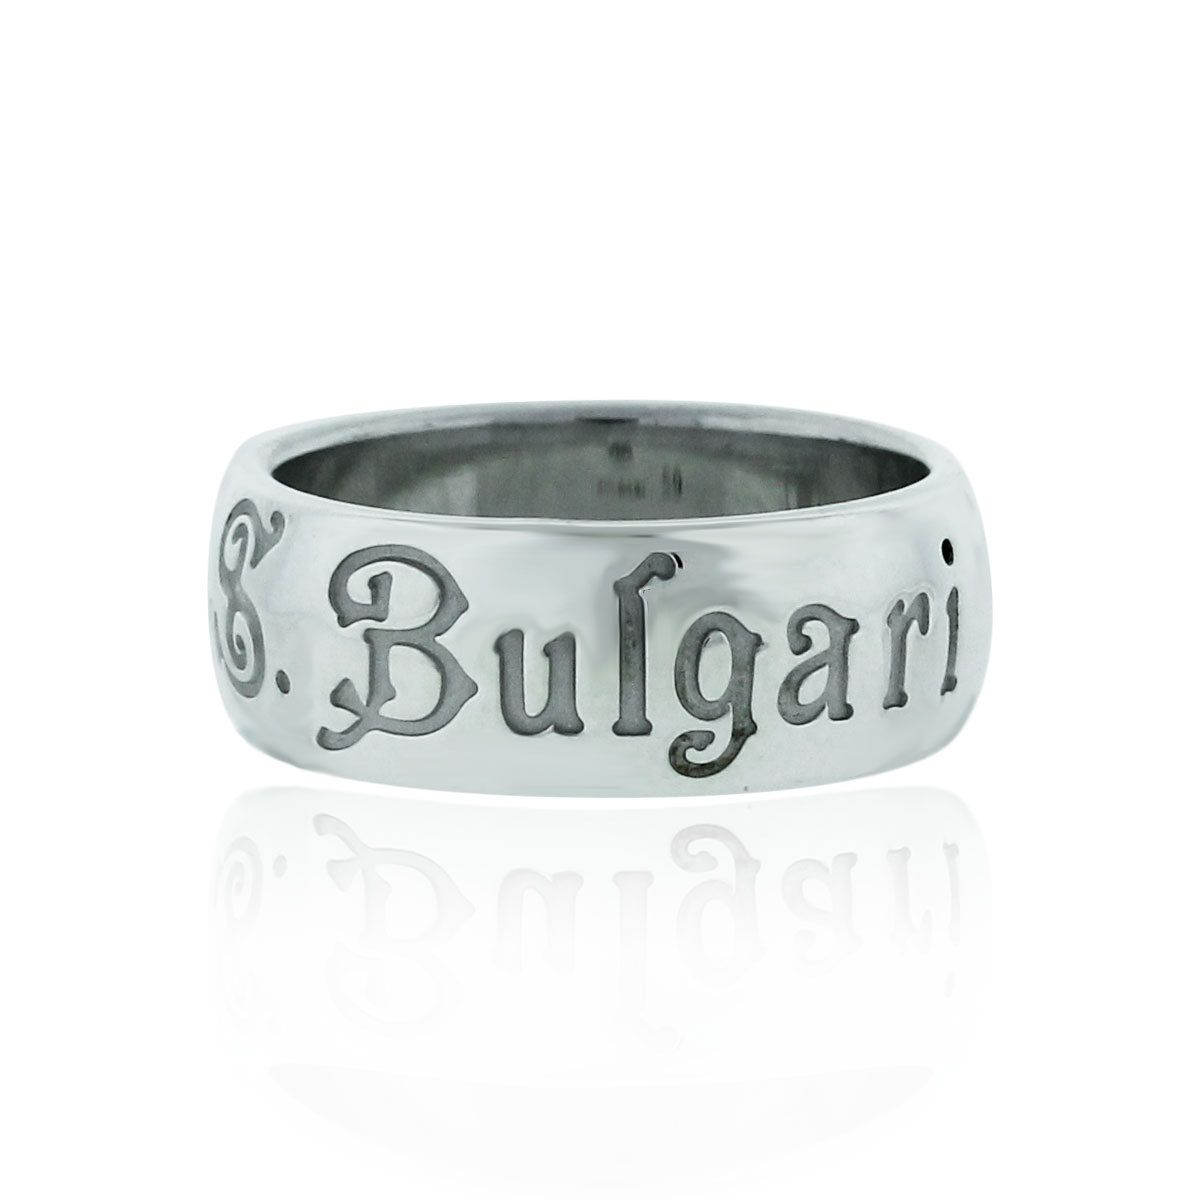 You are viewing this Bulgari Sterling Silver Save The Children Size 59 Ring!